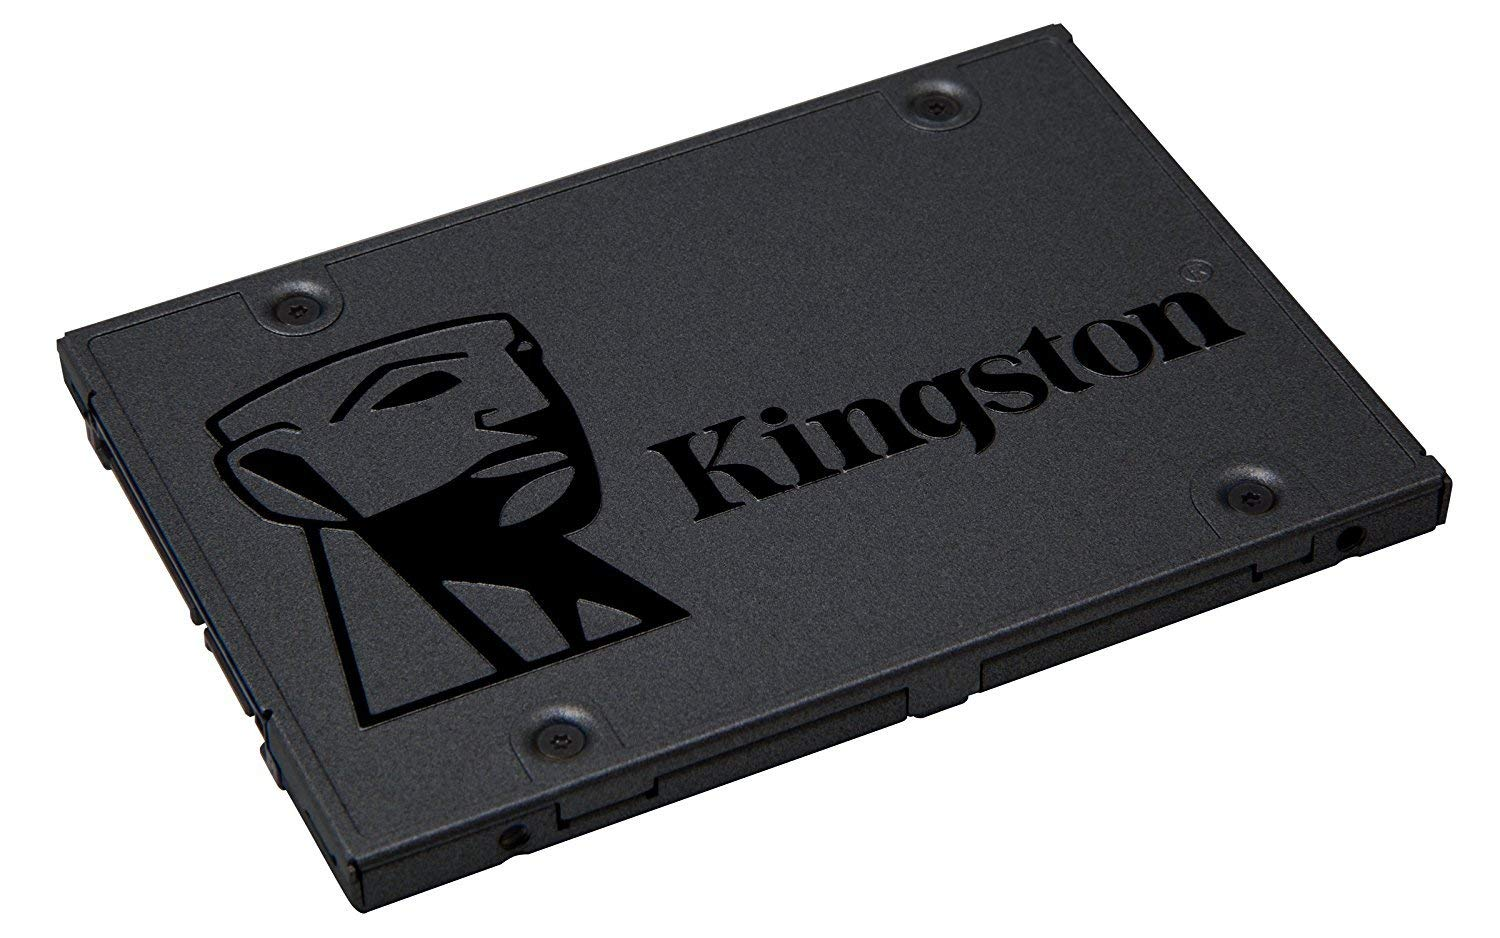 Kingston SA400S37/240G SSD A400 240 GB Solid State Drive for £34.86